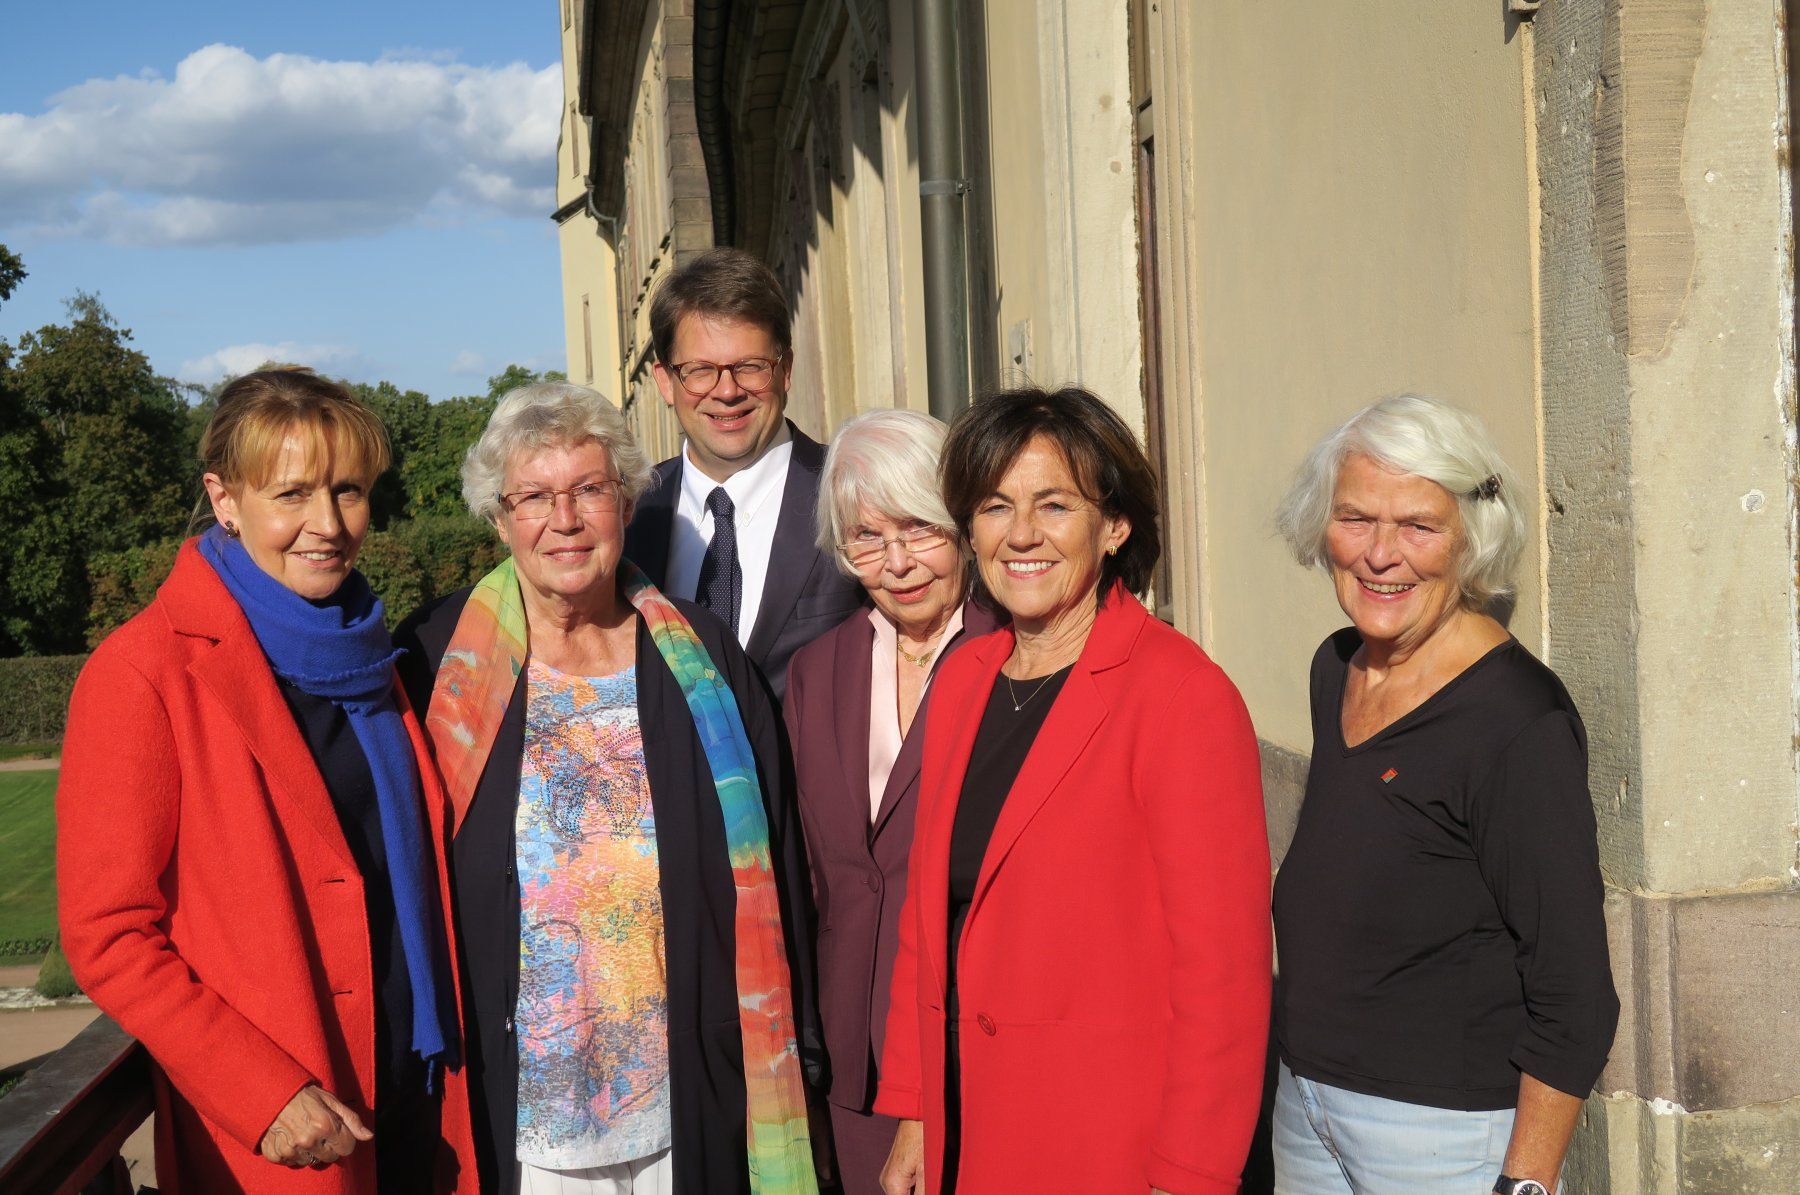 1987 in den Bundestag: Edelgard Buhlman (von links), Barbara Weiler, Rose Götte, Margit Conrad, Monika Ganseforth zusammen mit Fuldas Oberbürgermeister Heiko Wingenfeld im Oktober 2019.